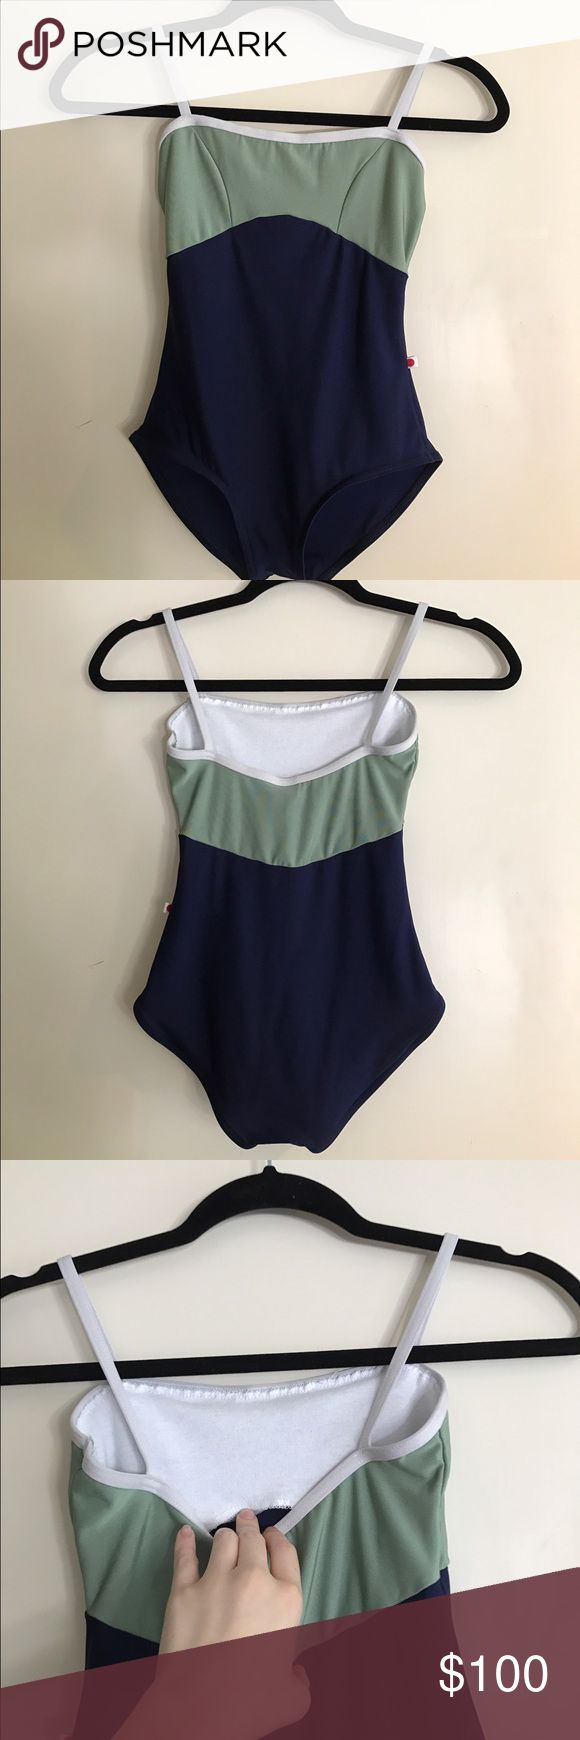 Yumiko style Denise Yumiko style Denise in N-Malta top, N-Dark Blue bottom, and N-Antique trim! Size XS and bust lining! Yumiko Other